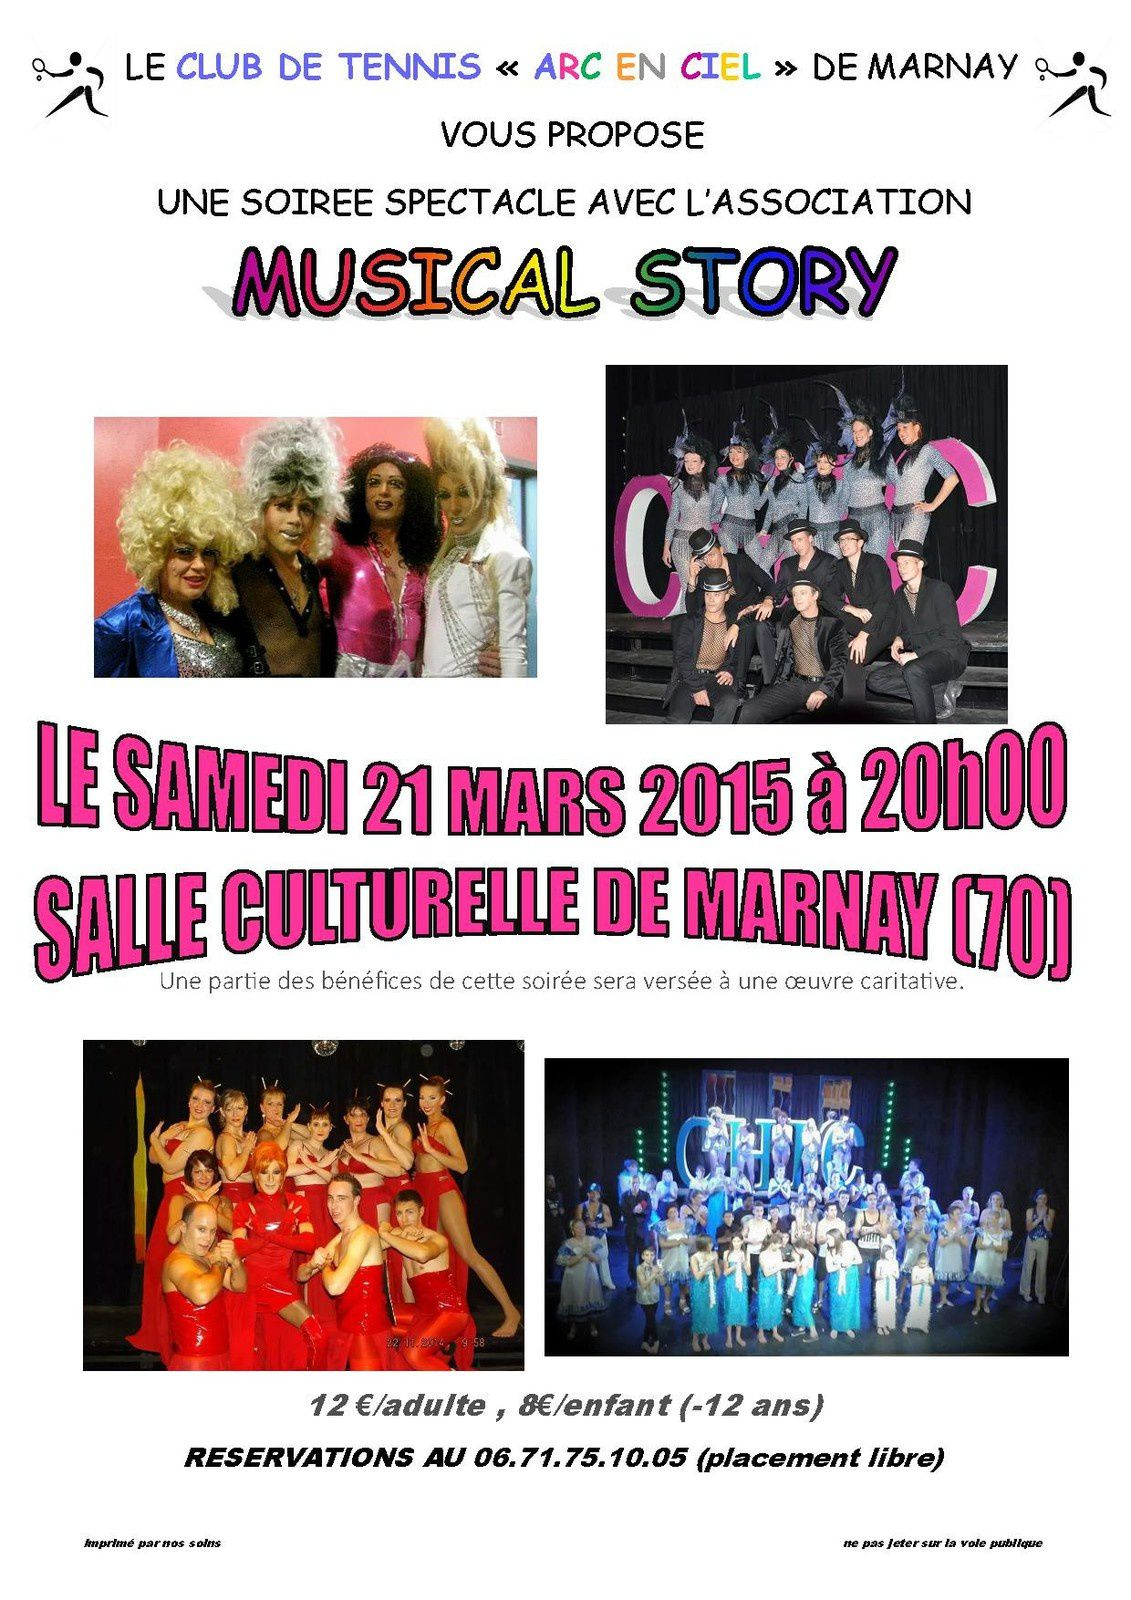 MUSICAL STORY LE 21 MARS 2015 A MARNAY